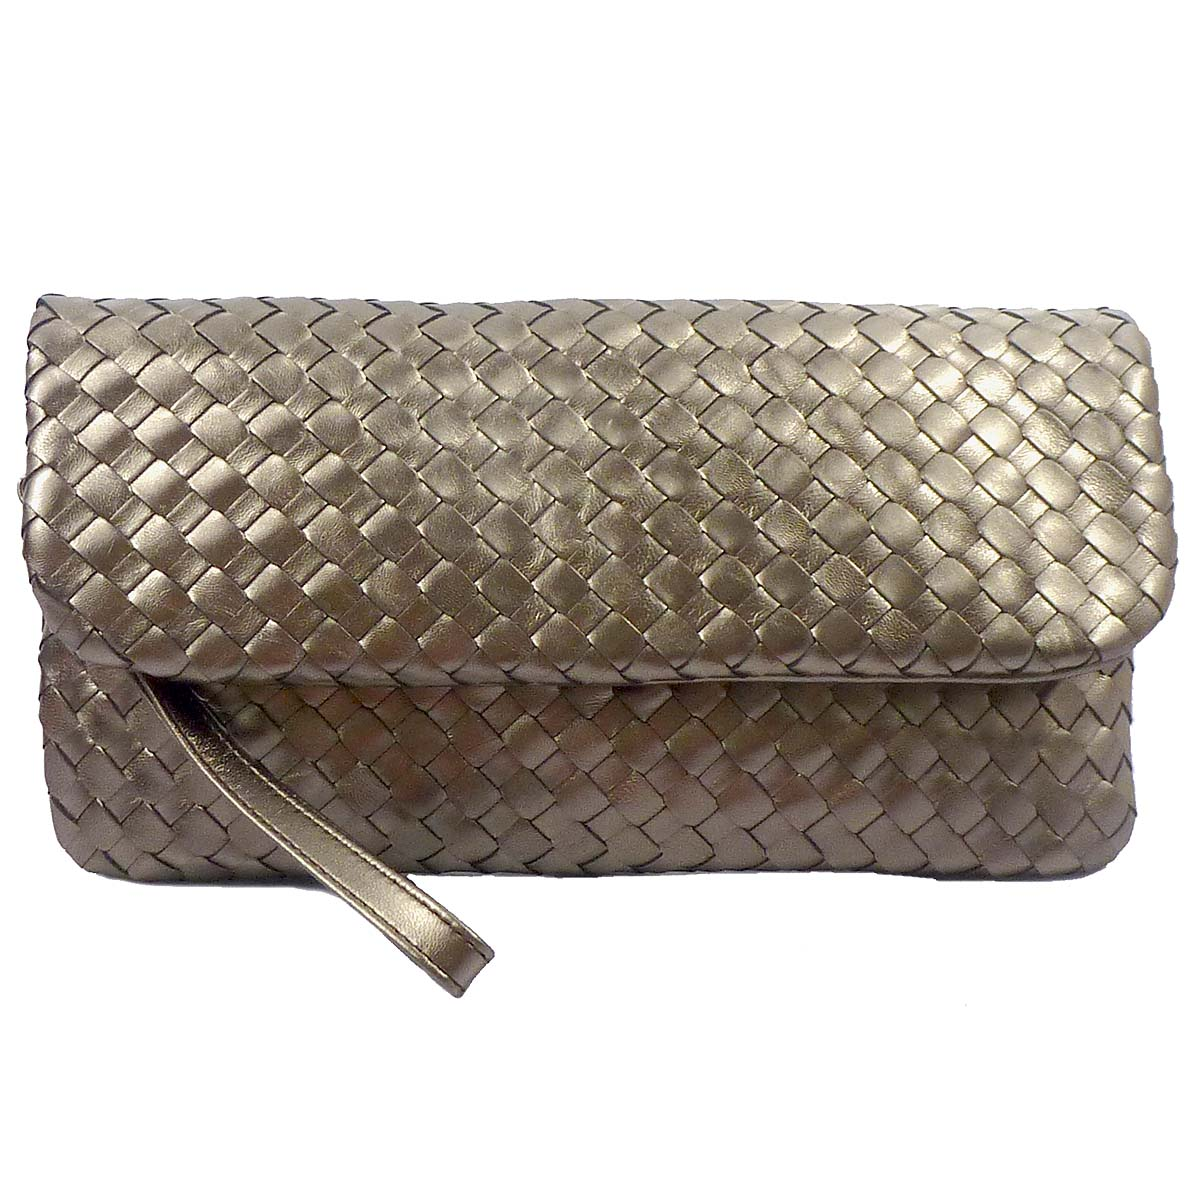 11011 pochette Envelope by Bottega Fiorentina